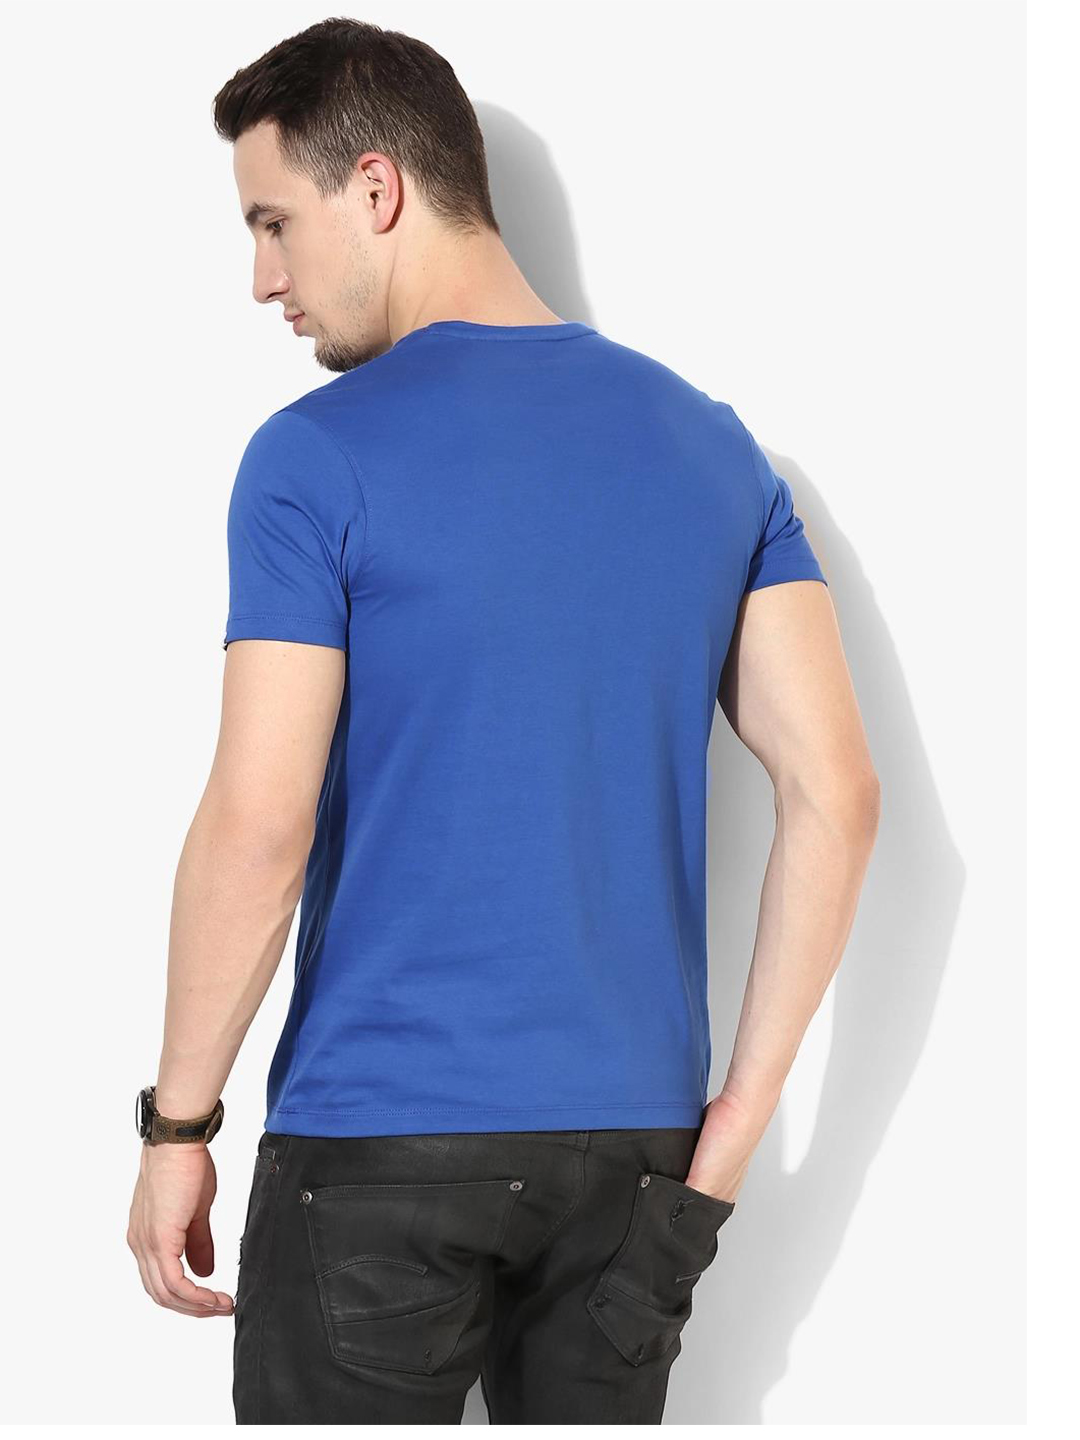 Spykar blue cotton printed slim fit t shirt g3 mts4841 for Fitted t shirt printing